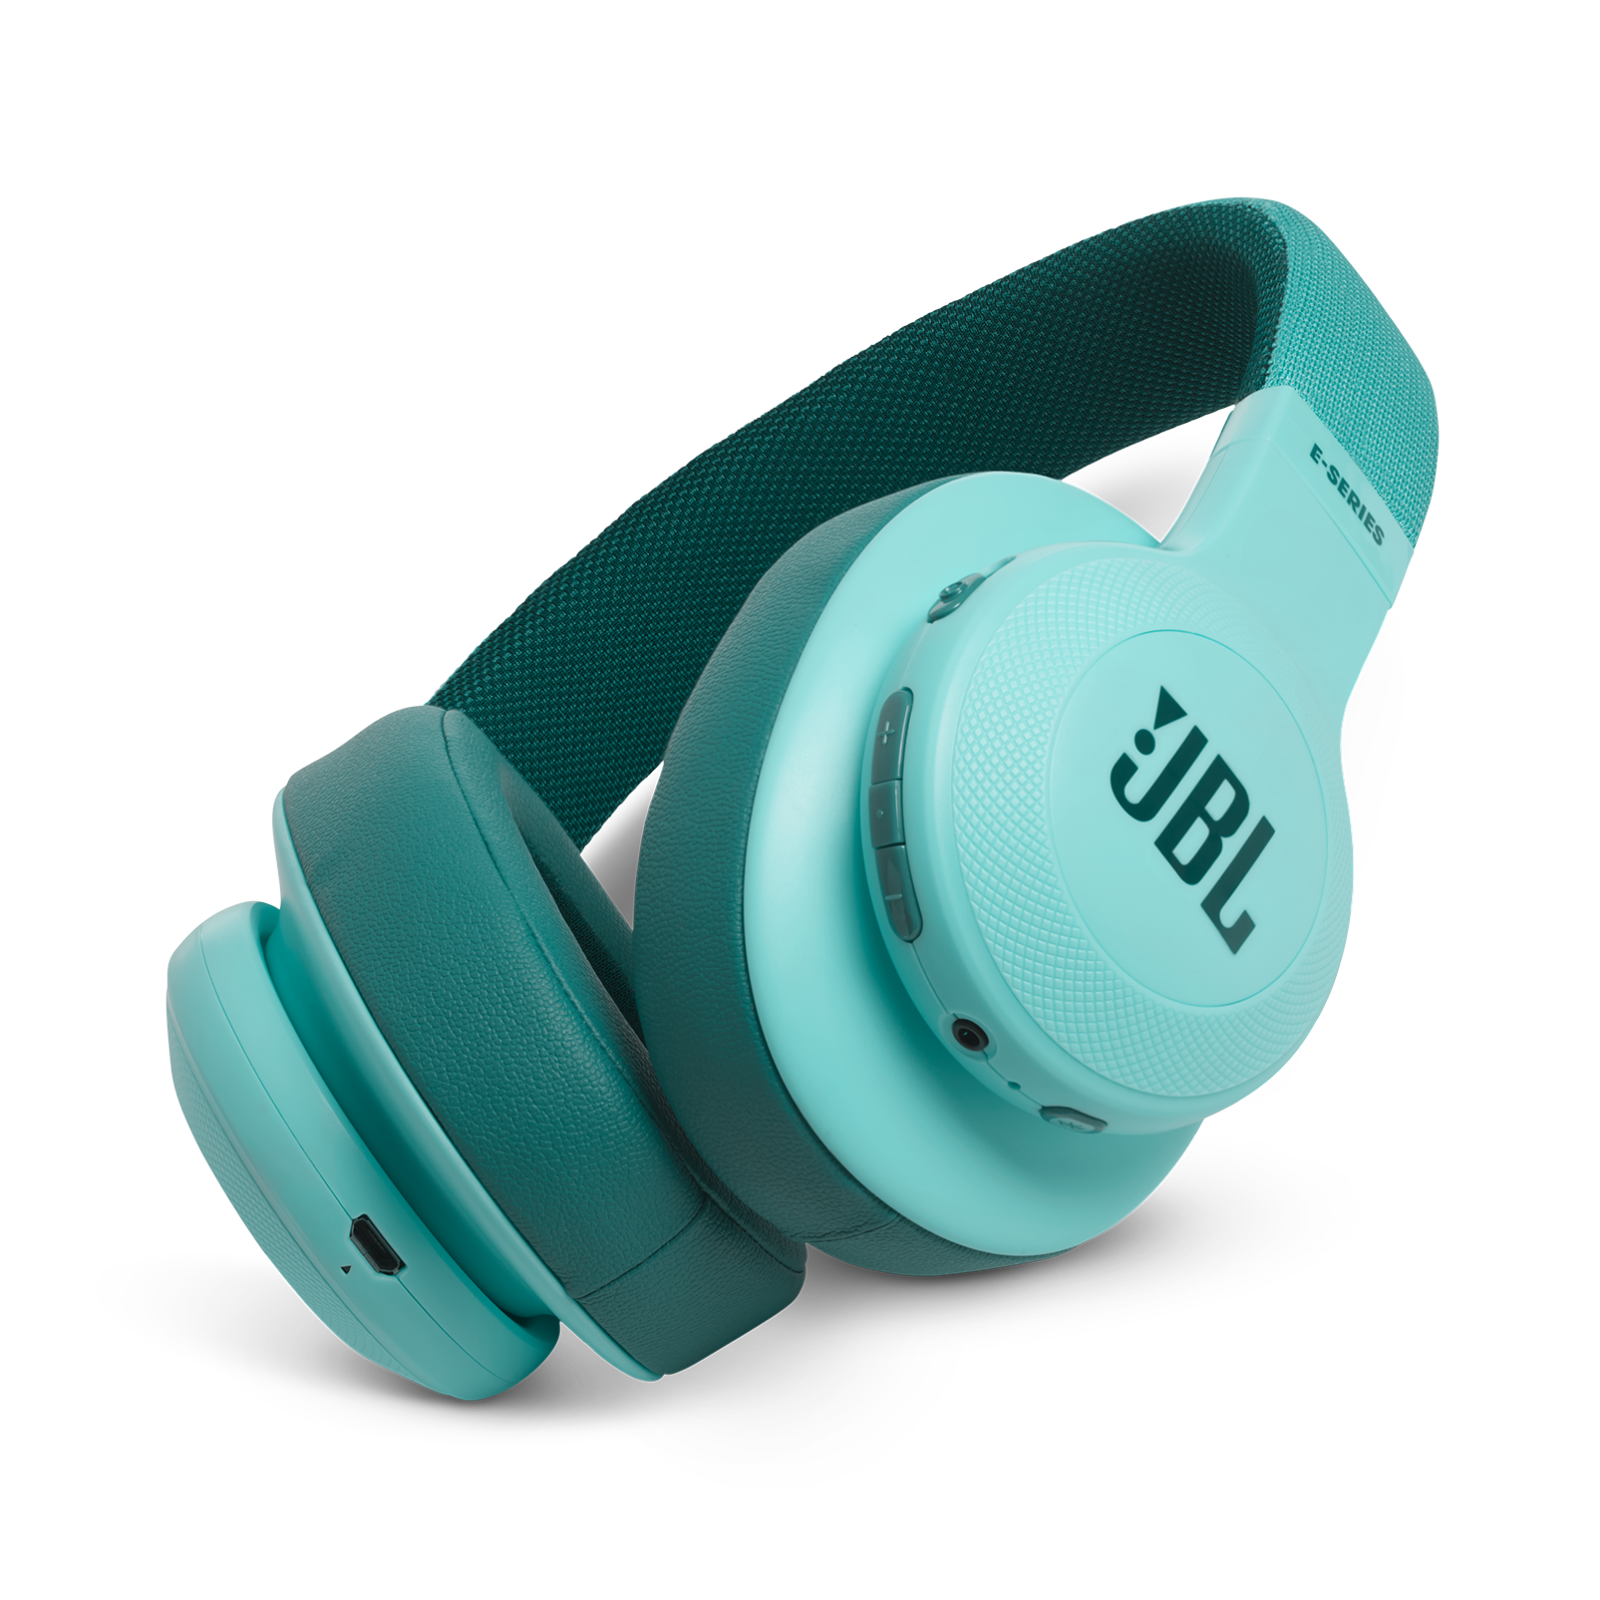 Details About Jbl E55bt Over Ear Wireless Bluetooth Headphones In Ear Headphones Headphones Bluetooth Headphones